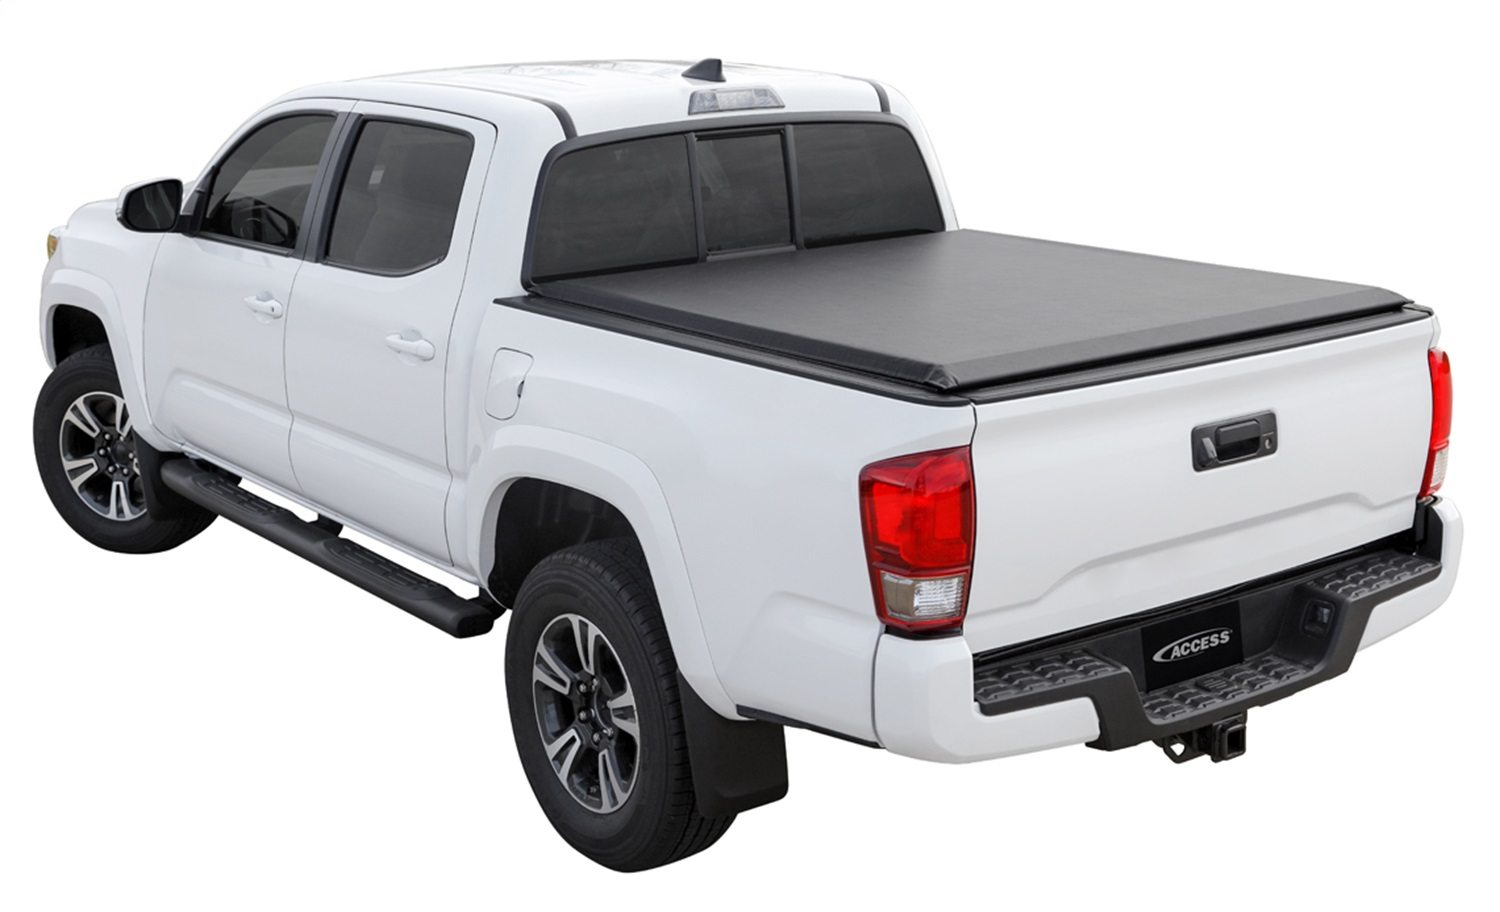 Access Cover 25279 ACCESS Limited Edition Roll-Up Cover Fits 16-20 Tacoma